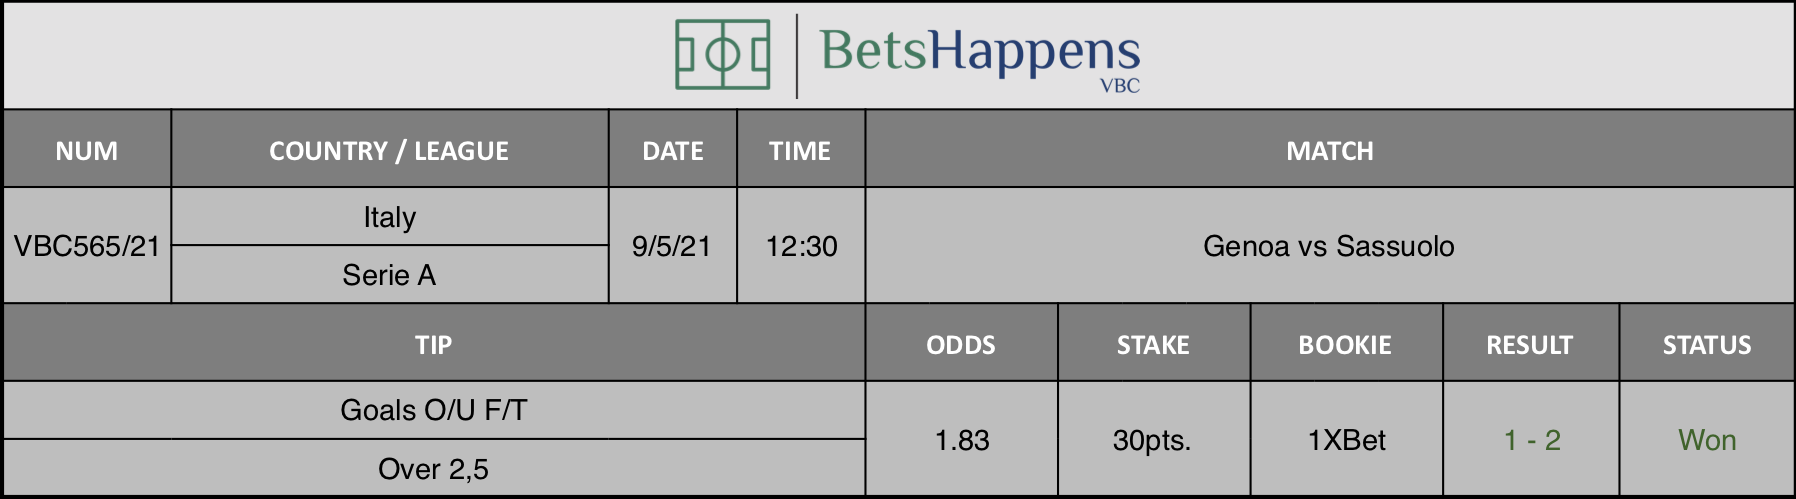 Results of our tip for the Genoa vs Sassuolo match where Goals O/U F/T Over 2,5 is recommended.